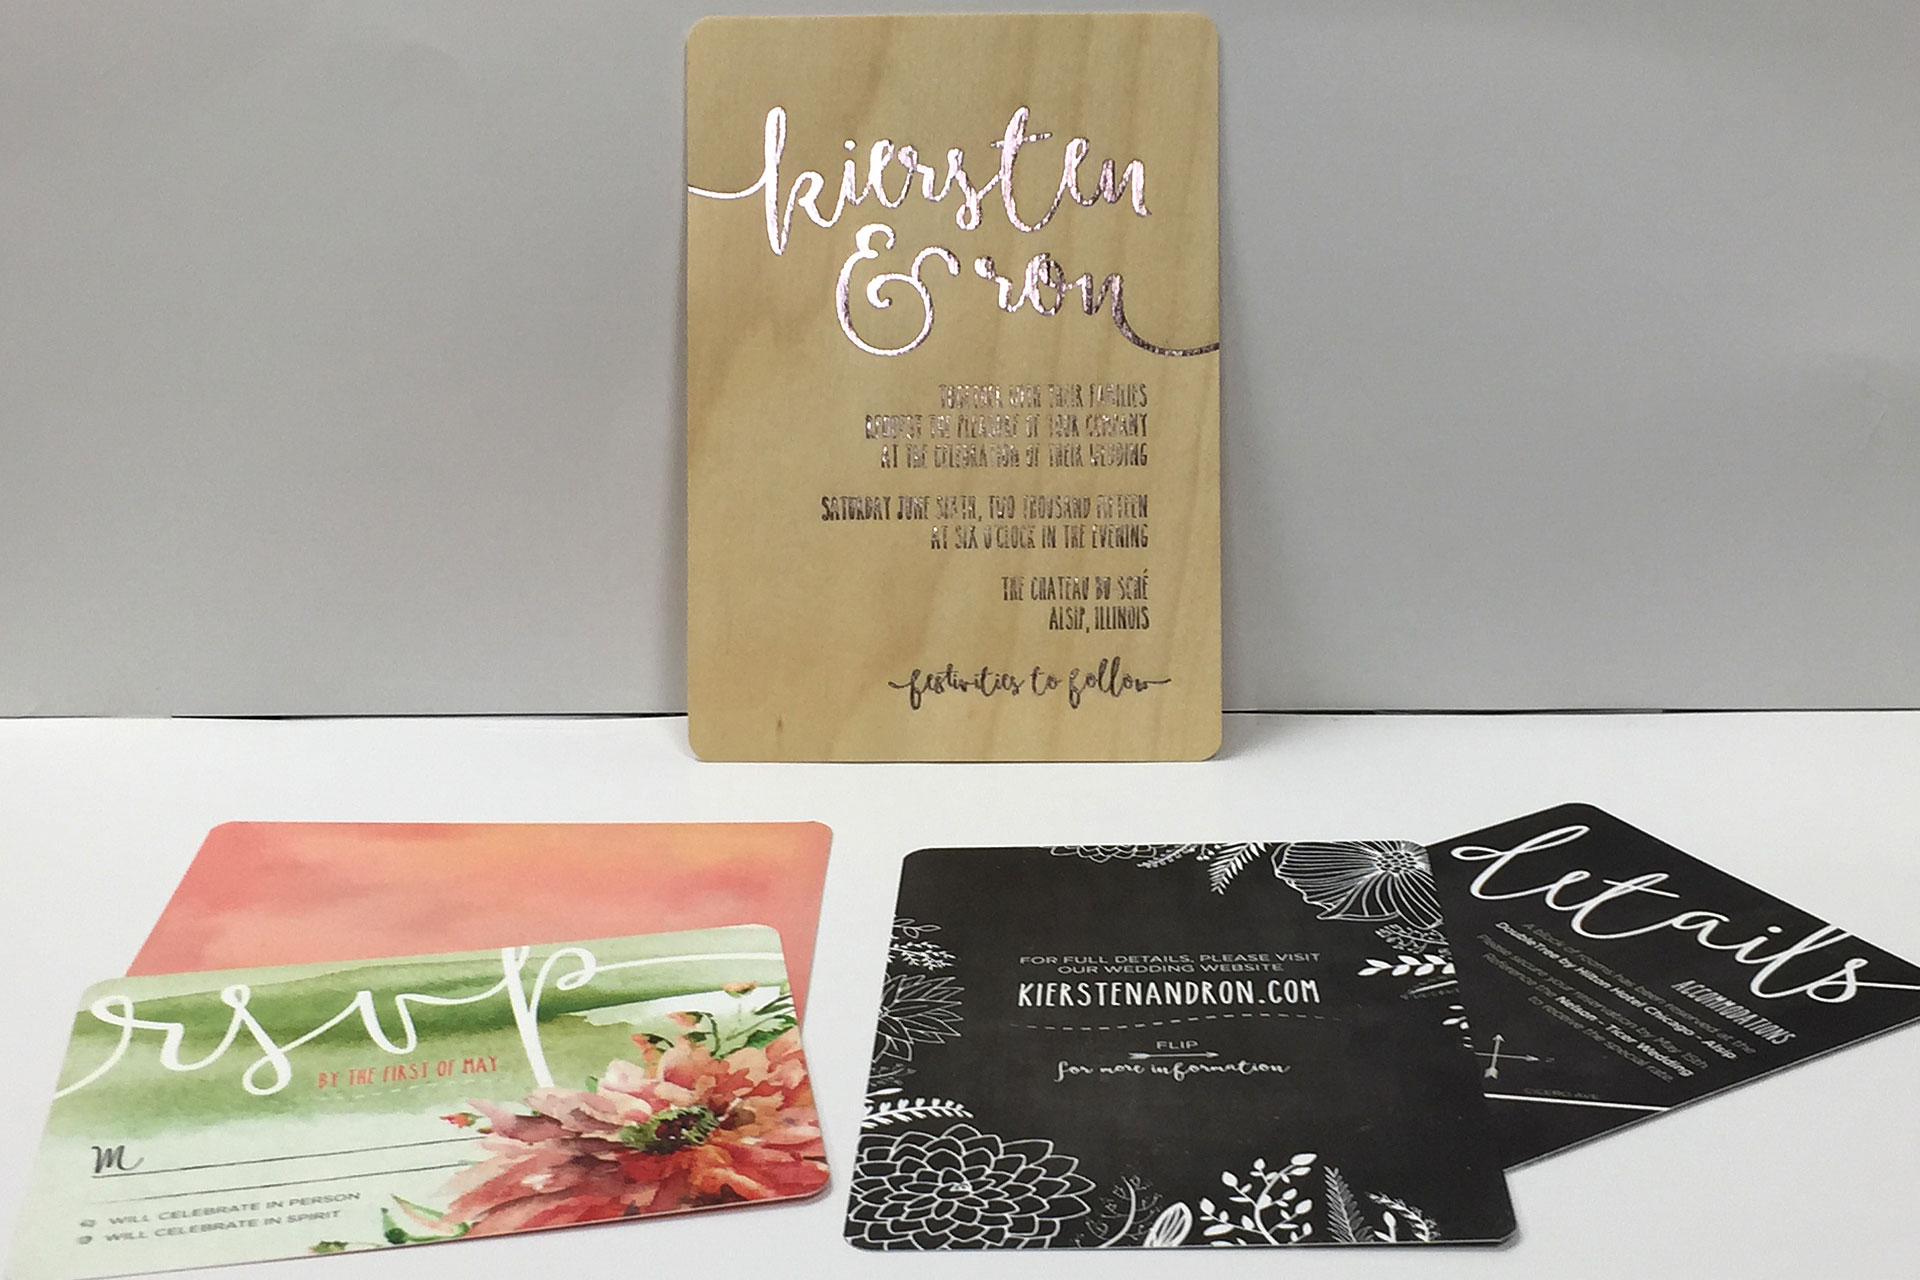 Raised Ink Foil Embossing Die Cutting Varnish Soft Touch